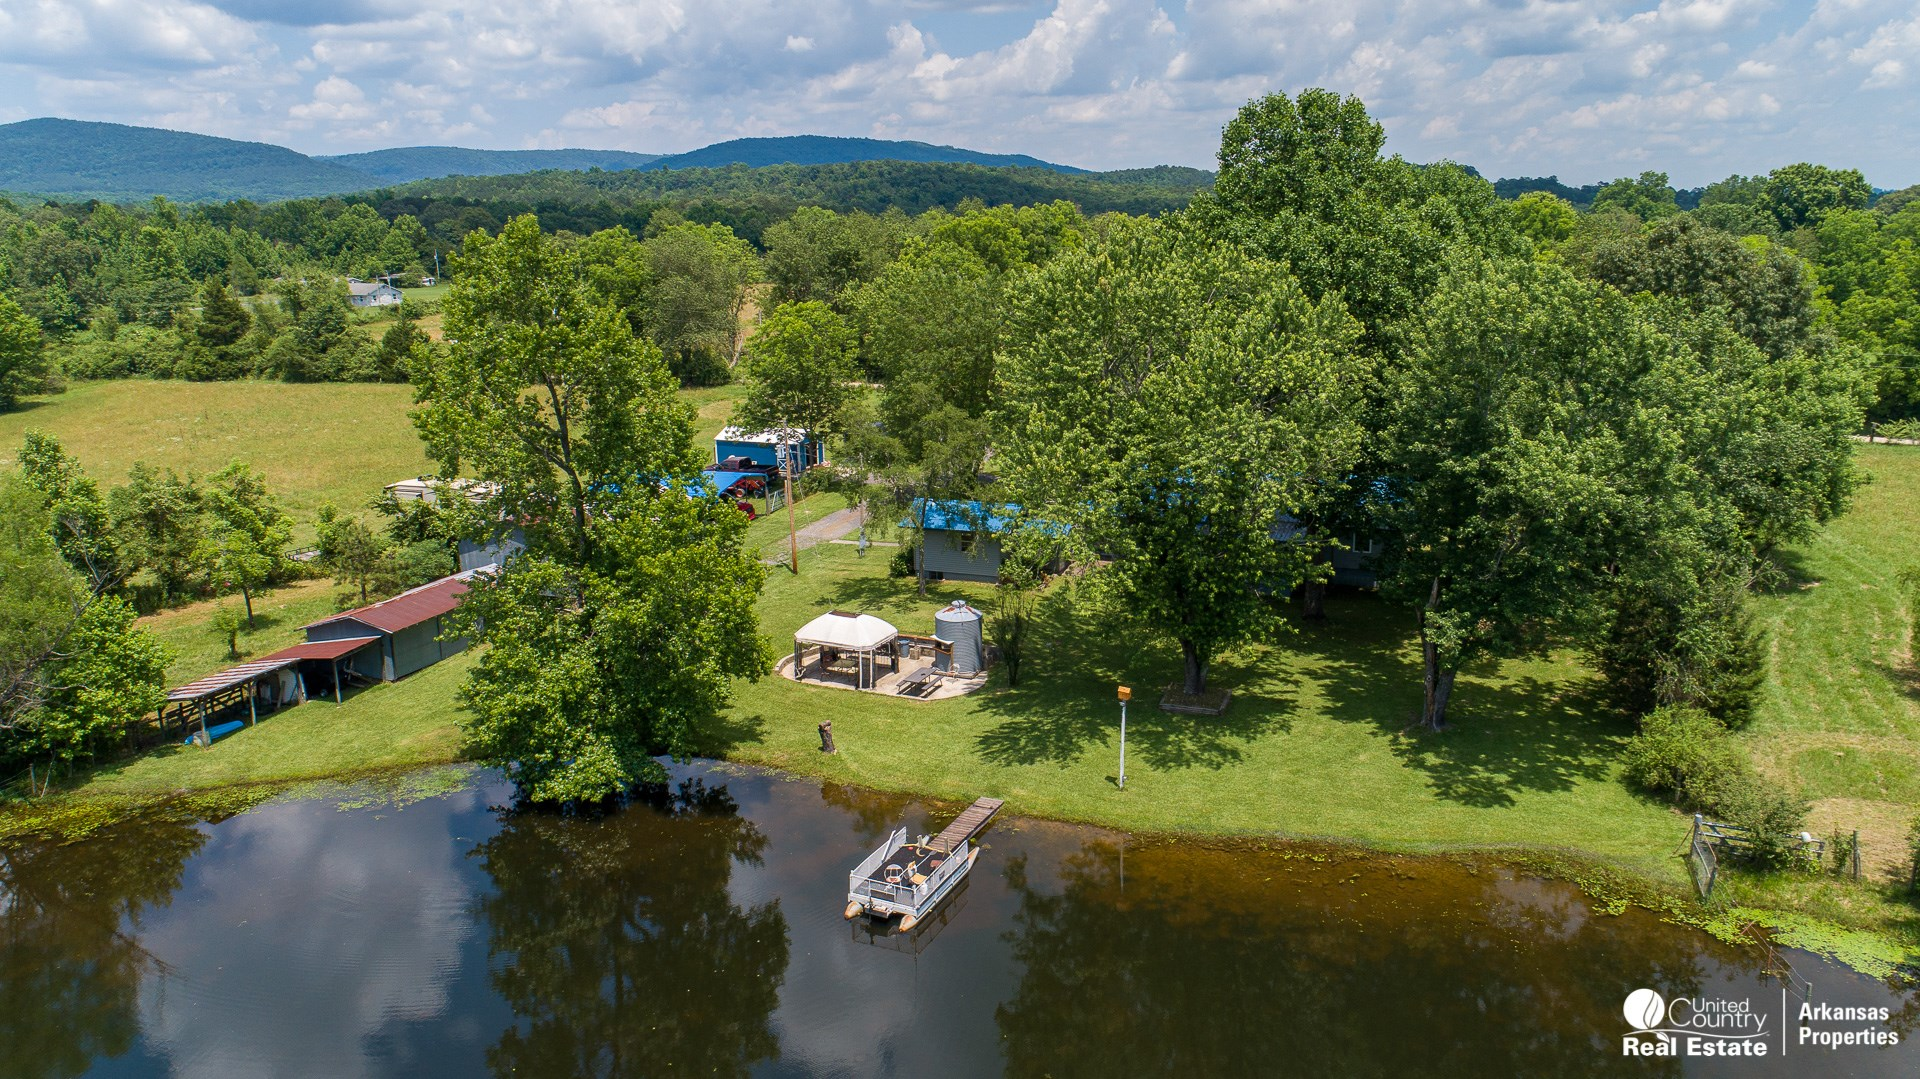 Country Home with acreage for sale in Arkansas with pond.